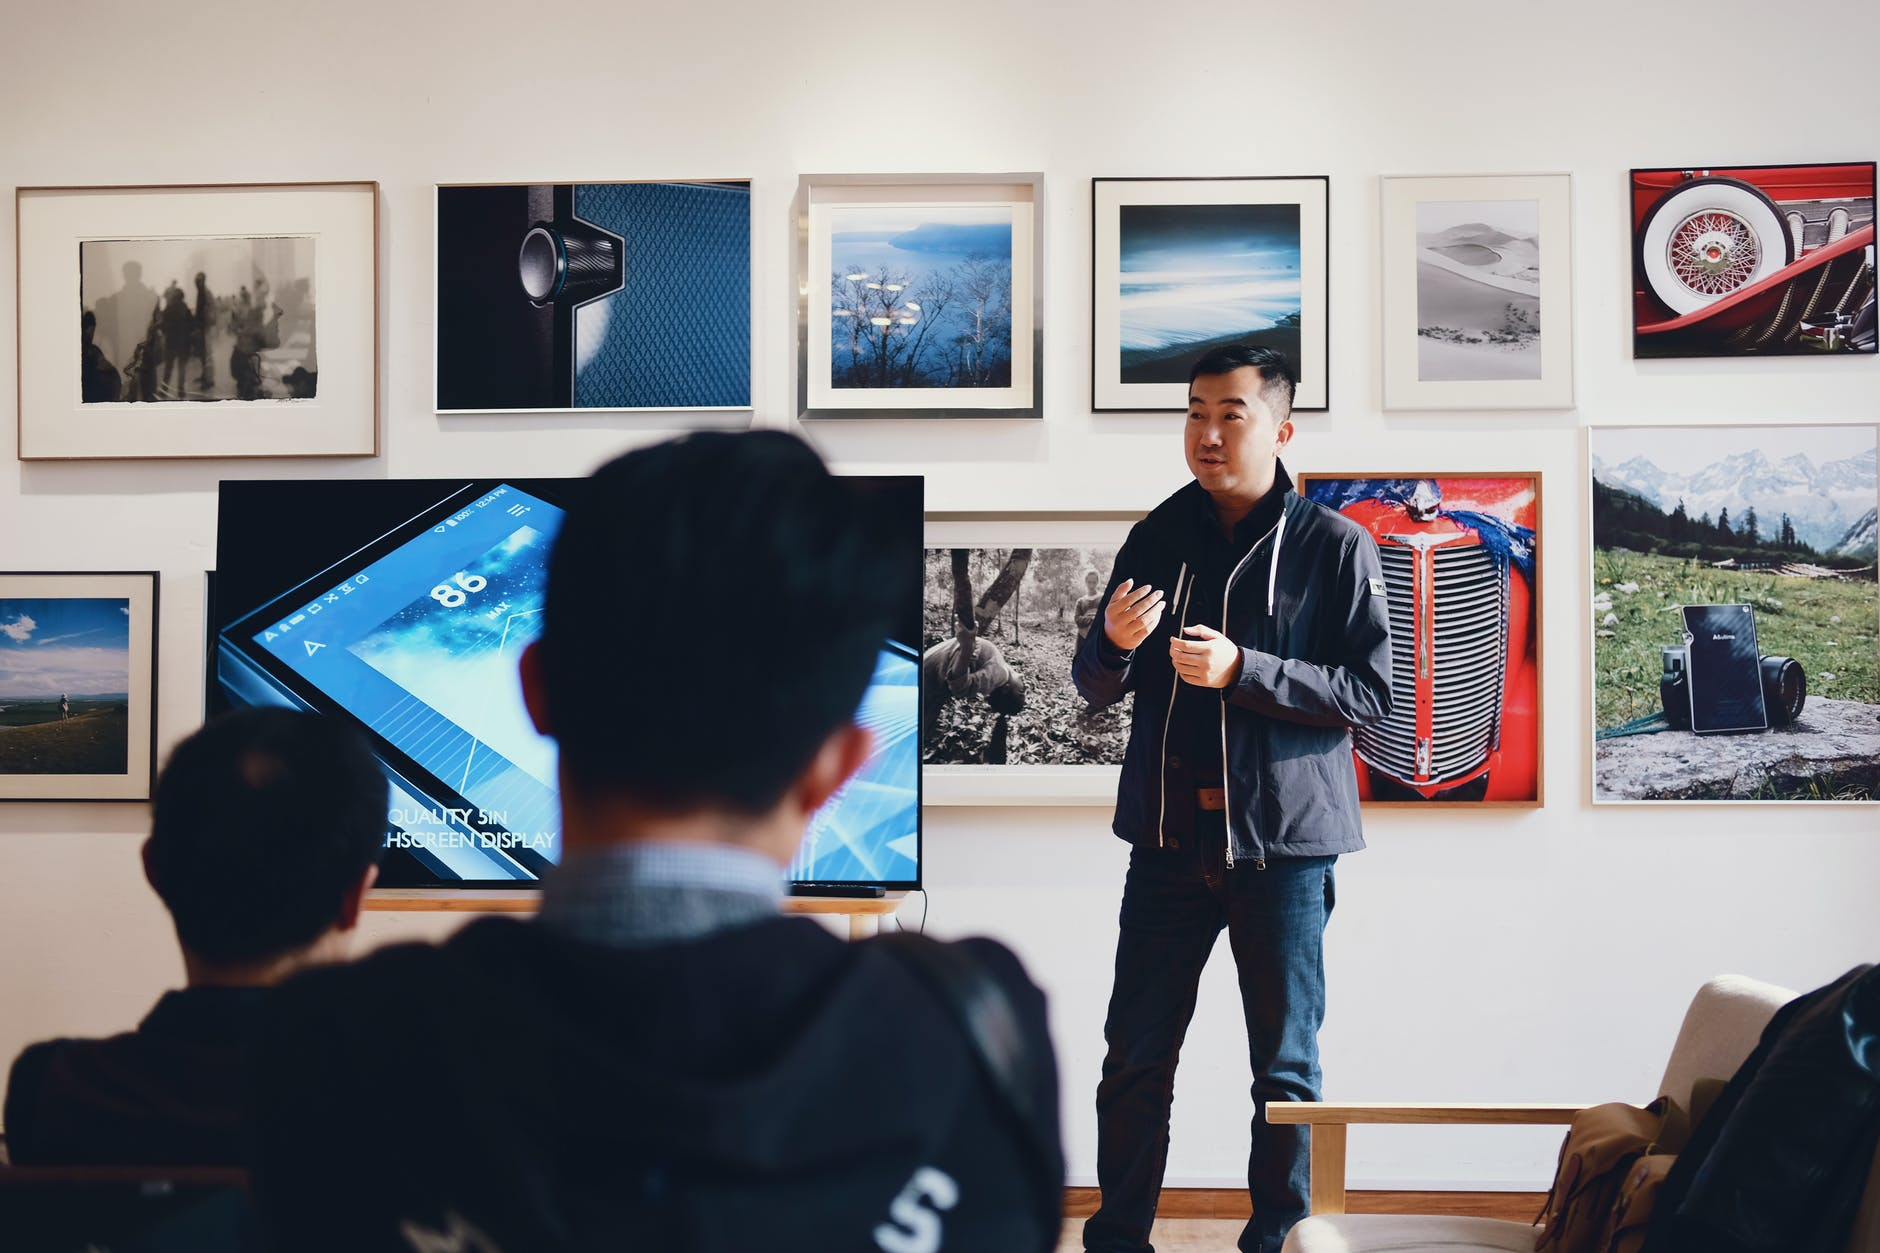 A MAN TALKING TO TWO PEOPLE BESIDE A FLAT SCREEN WITH PHOTOS IN THE BACKGROUND